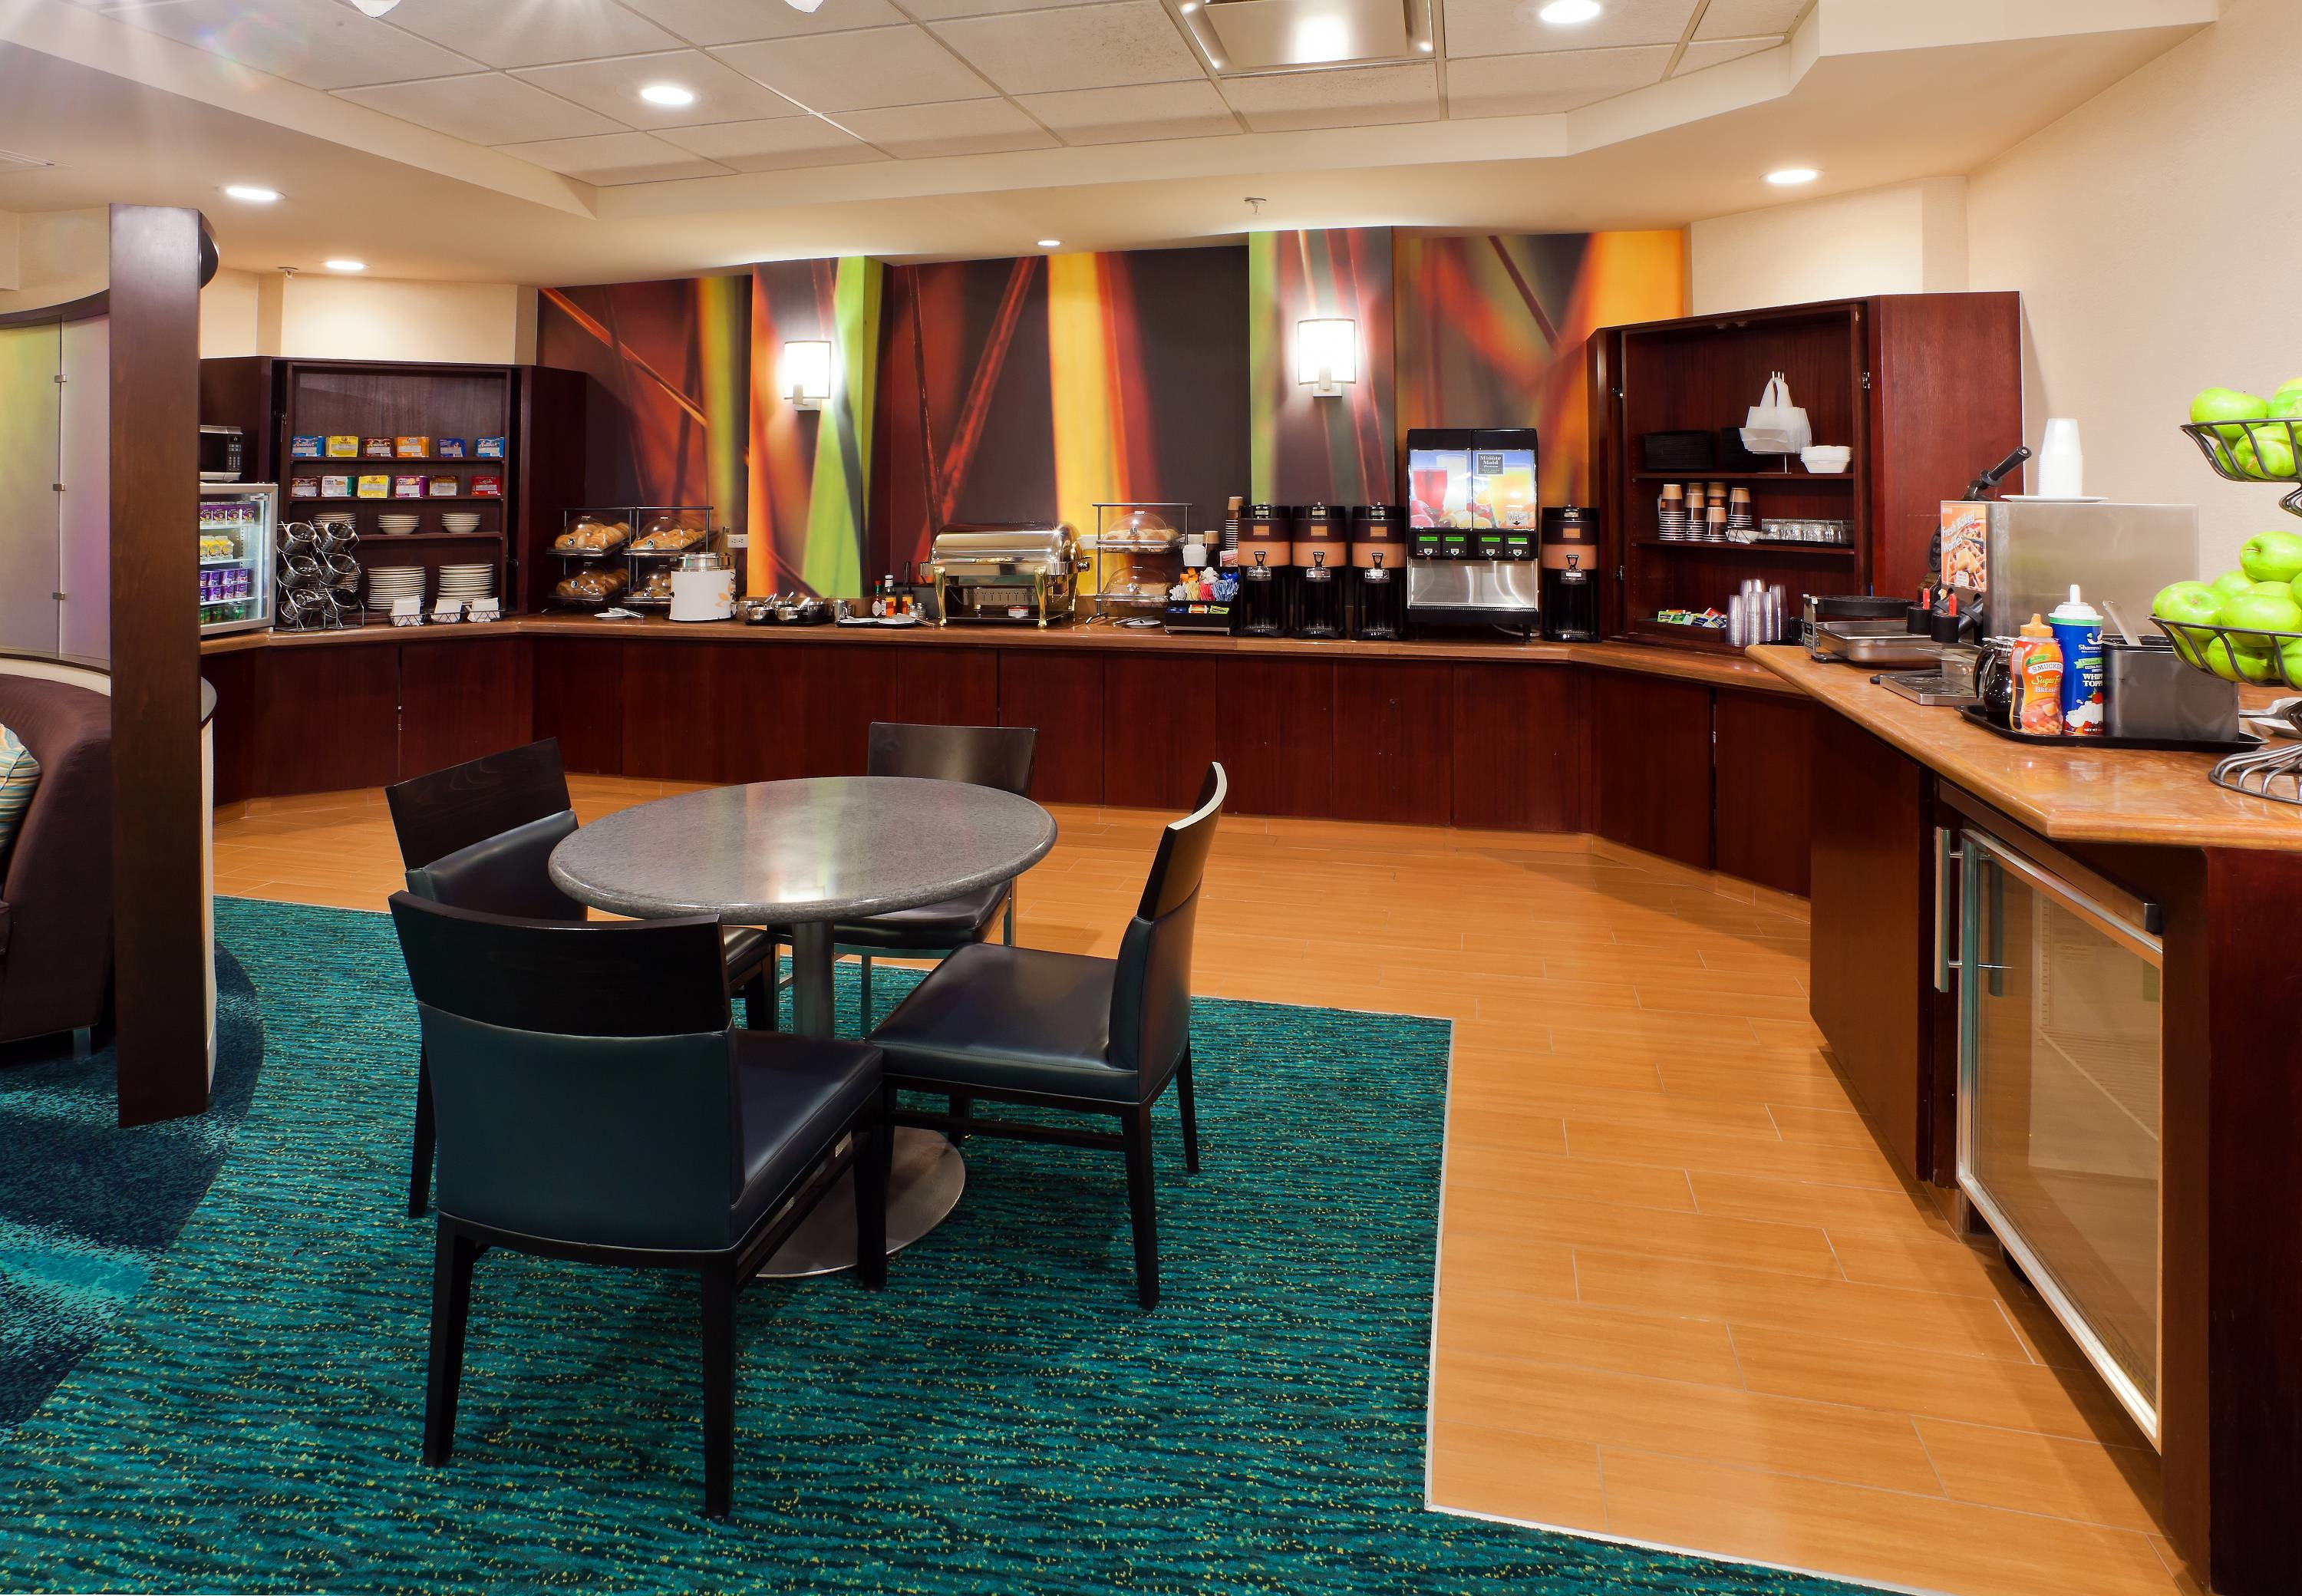 Hotels in Denver  Reserve Now and Save  Choice Hotels